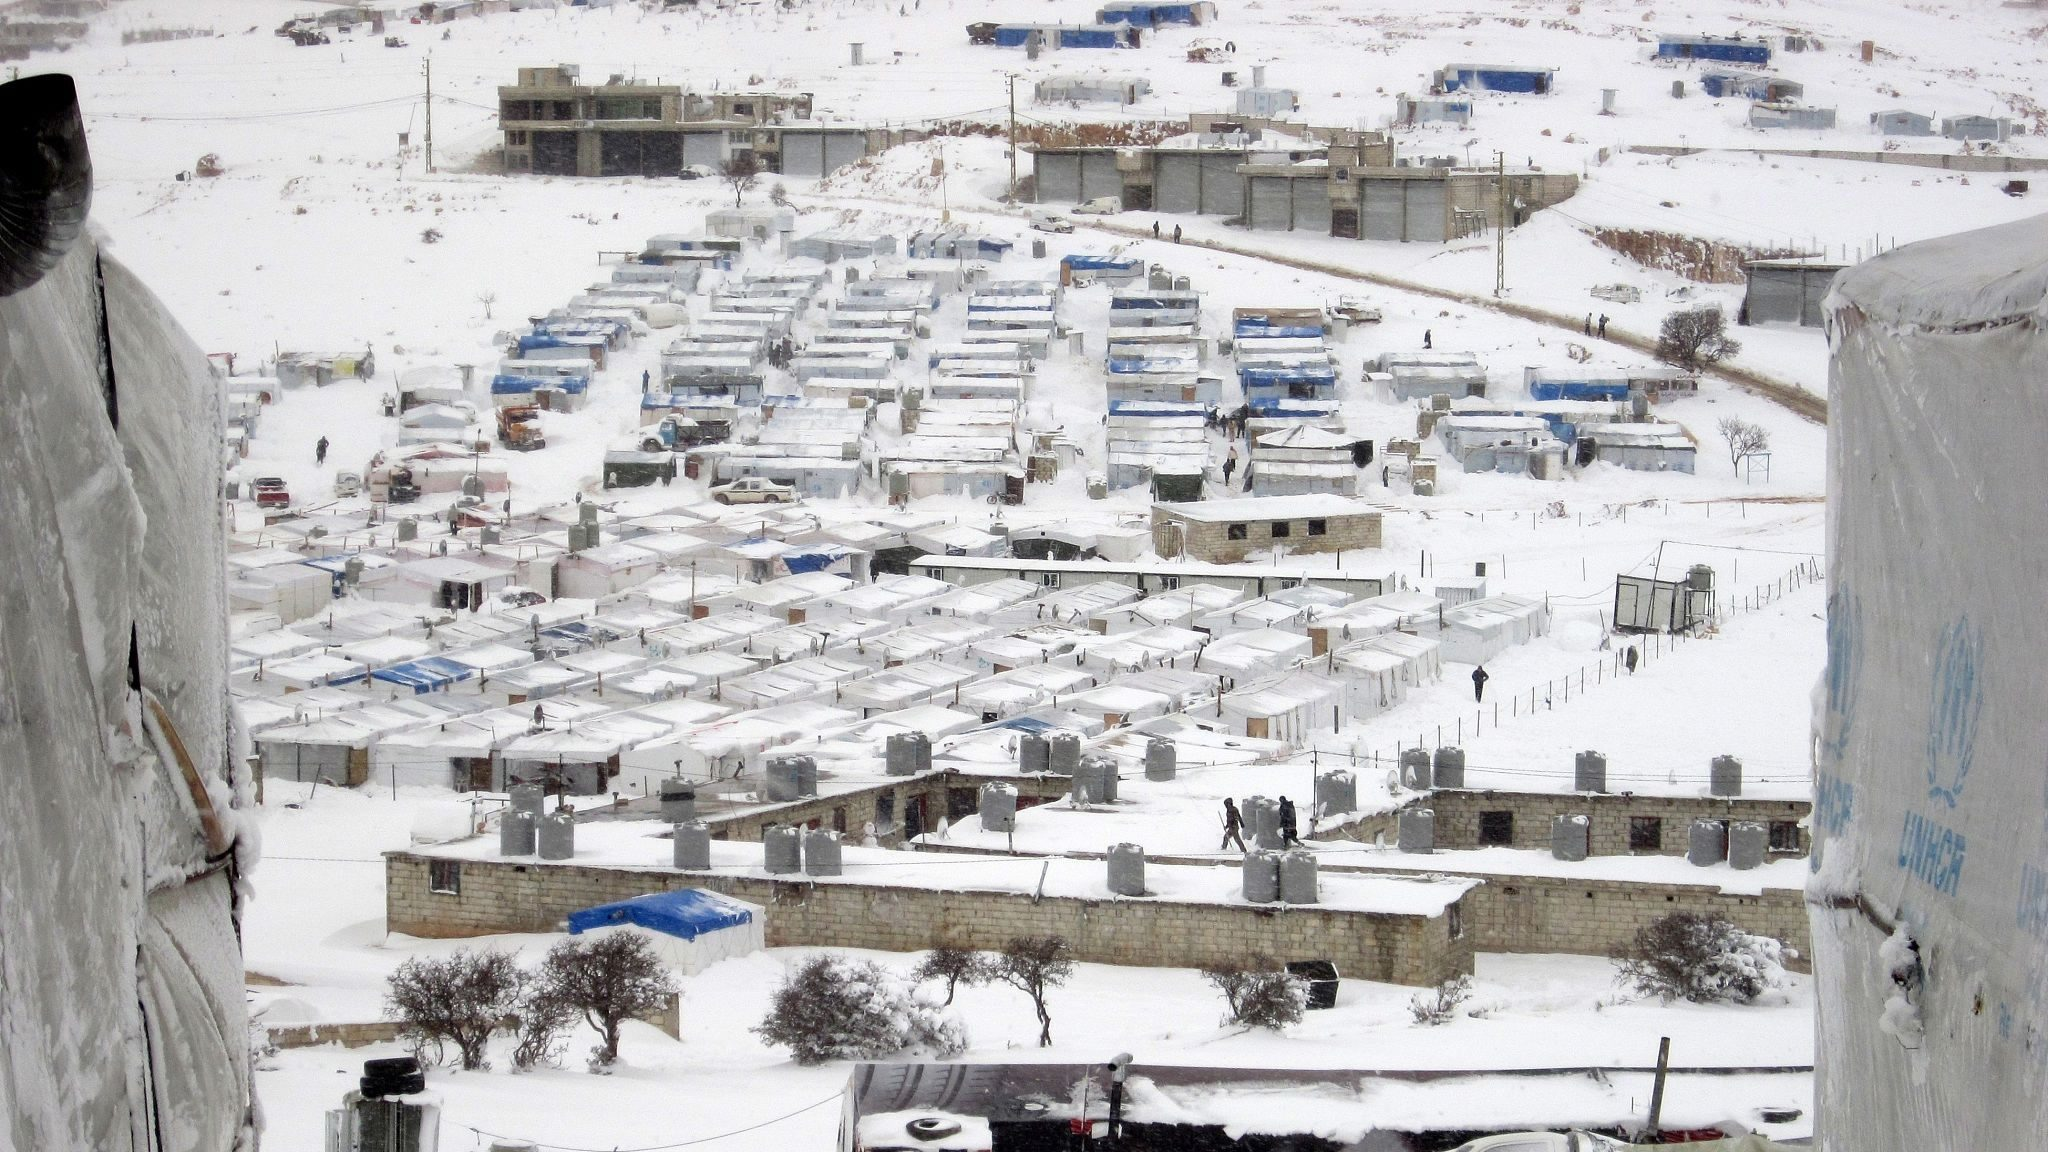 00a67811-bd12-4ca8-b006-cbe31444875610 Syrians freeze to death fleeing to Lebanon CGTN